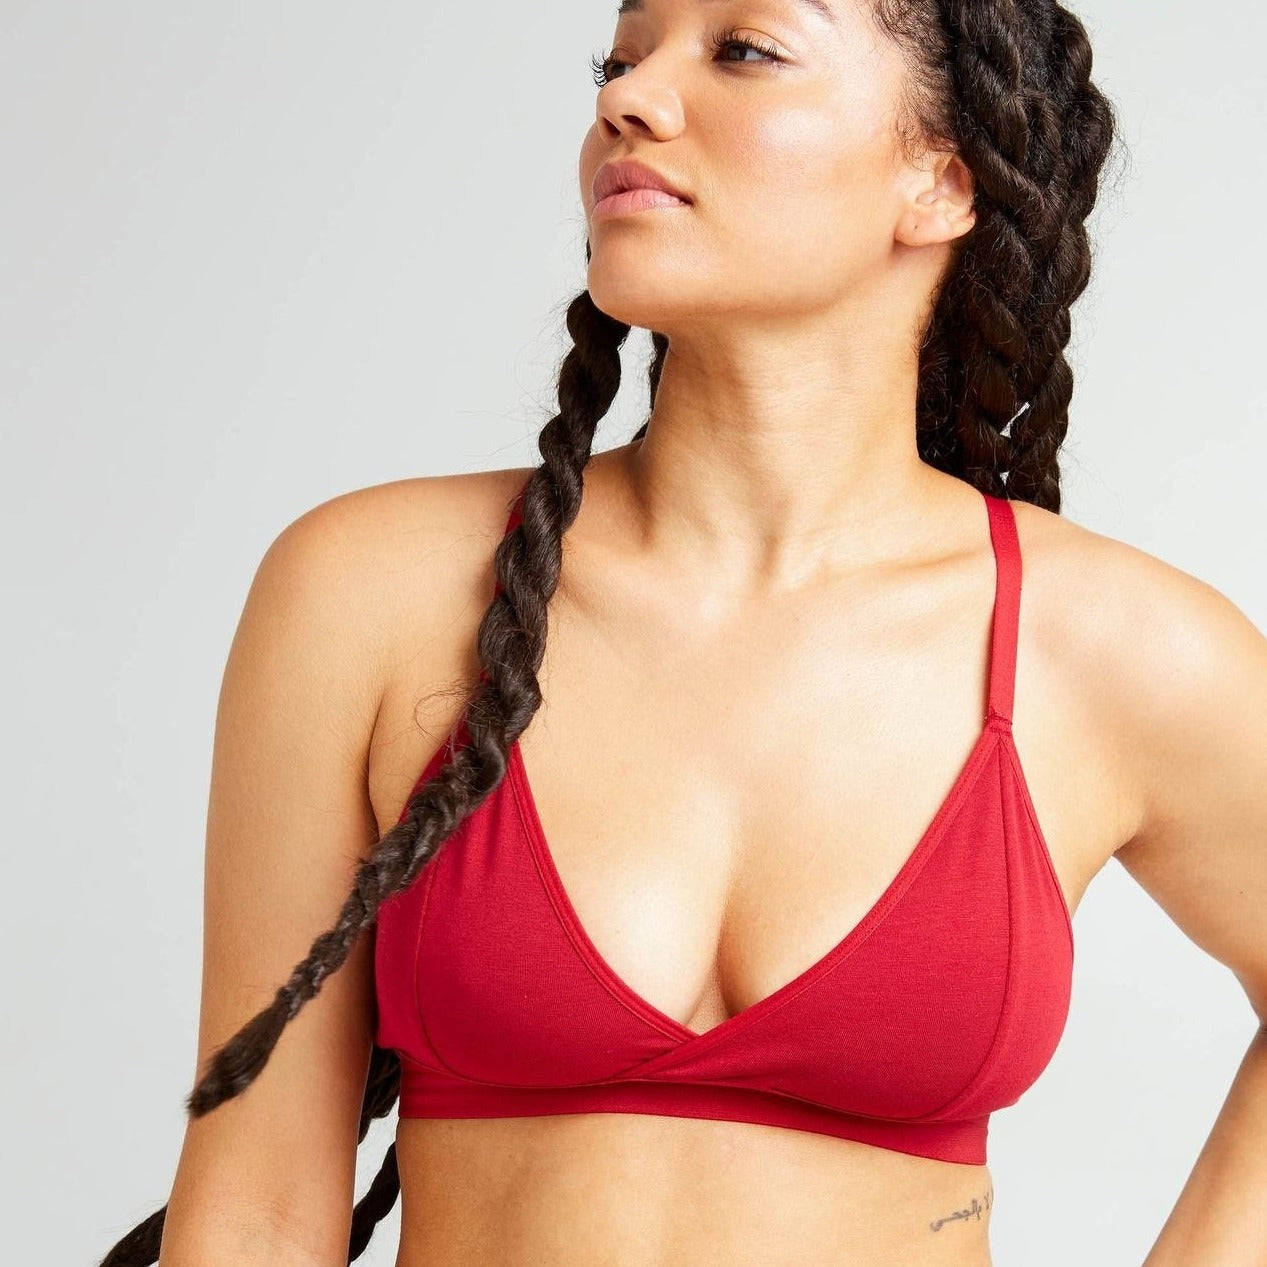 RICHER POORER - WOMEN'S CLASSIC BRALETTE IN RED VELVET